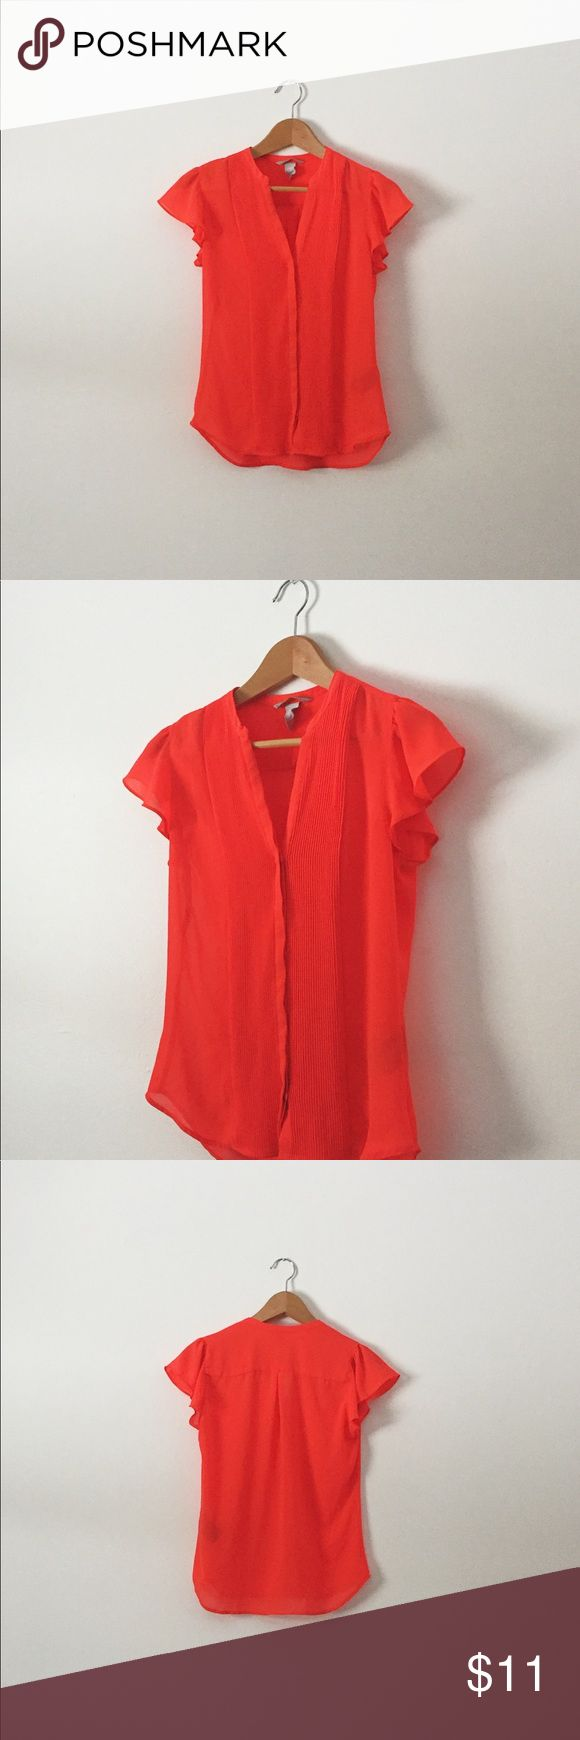 Bright Coral Blouse Comfortable and airy dress shirt in a pretty coral color. H&M Tops Blouses